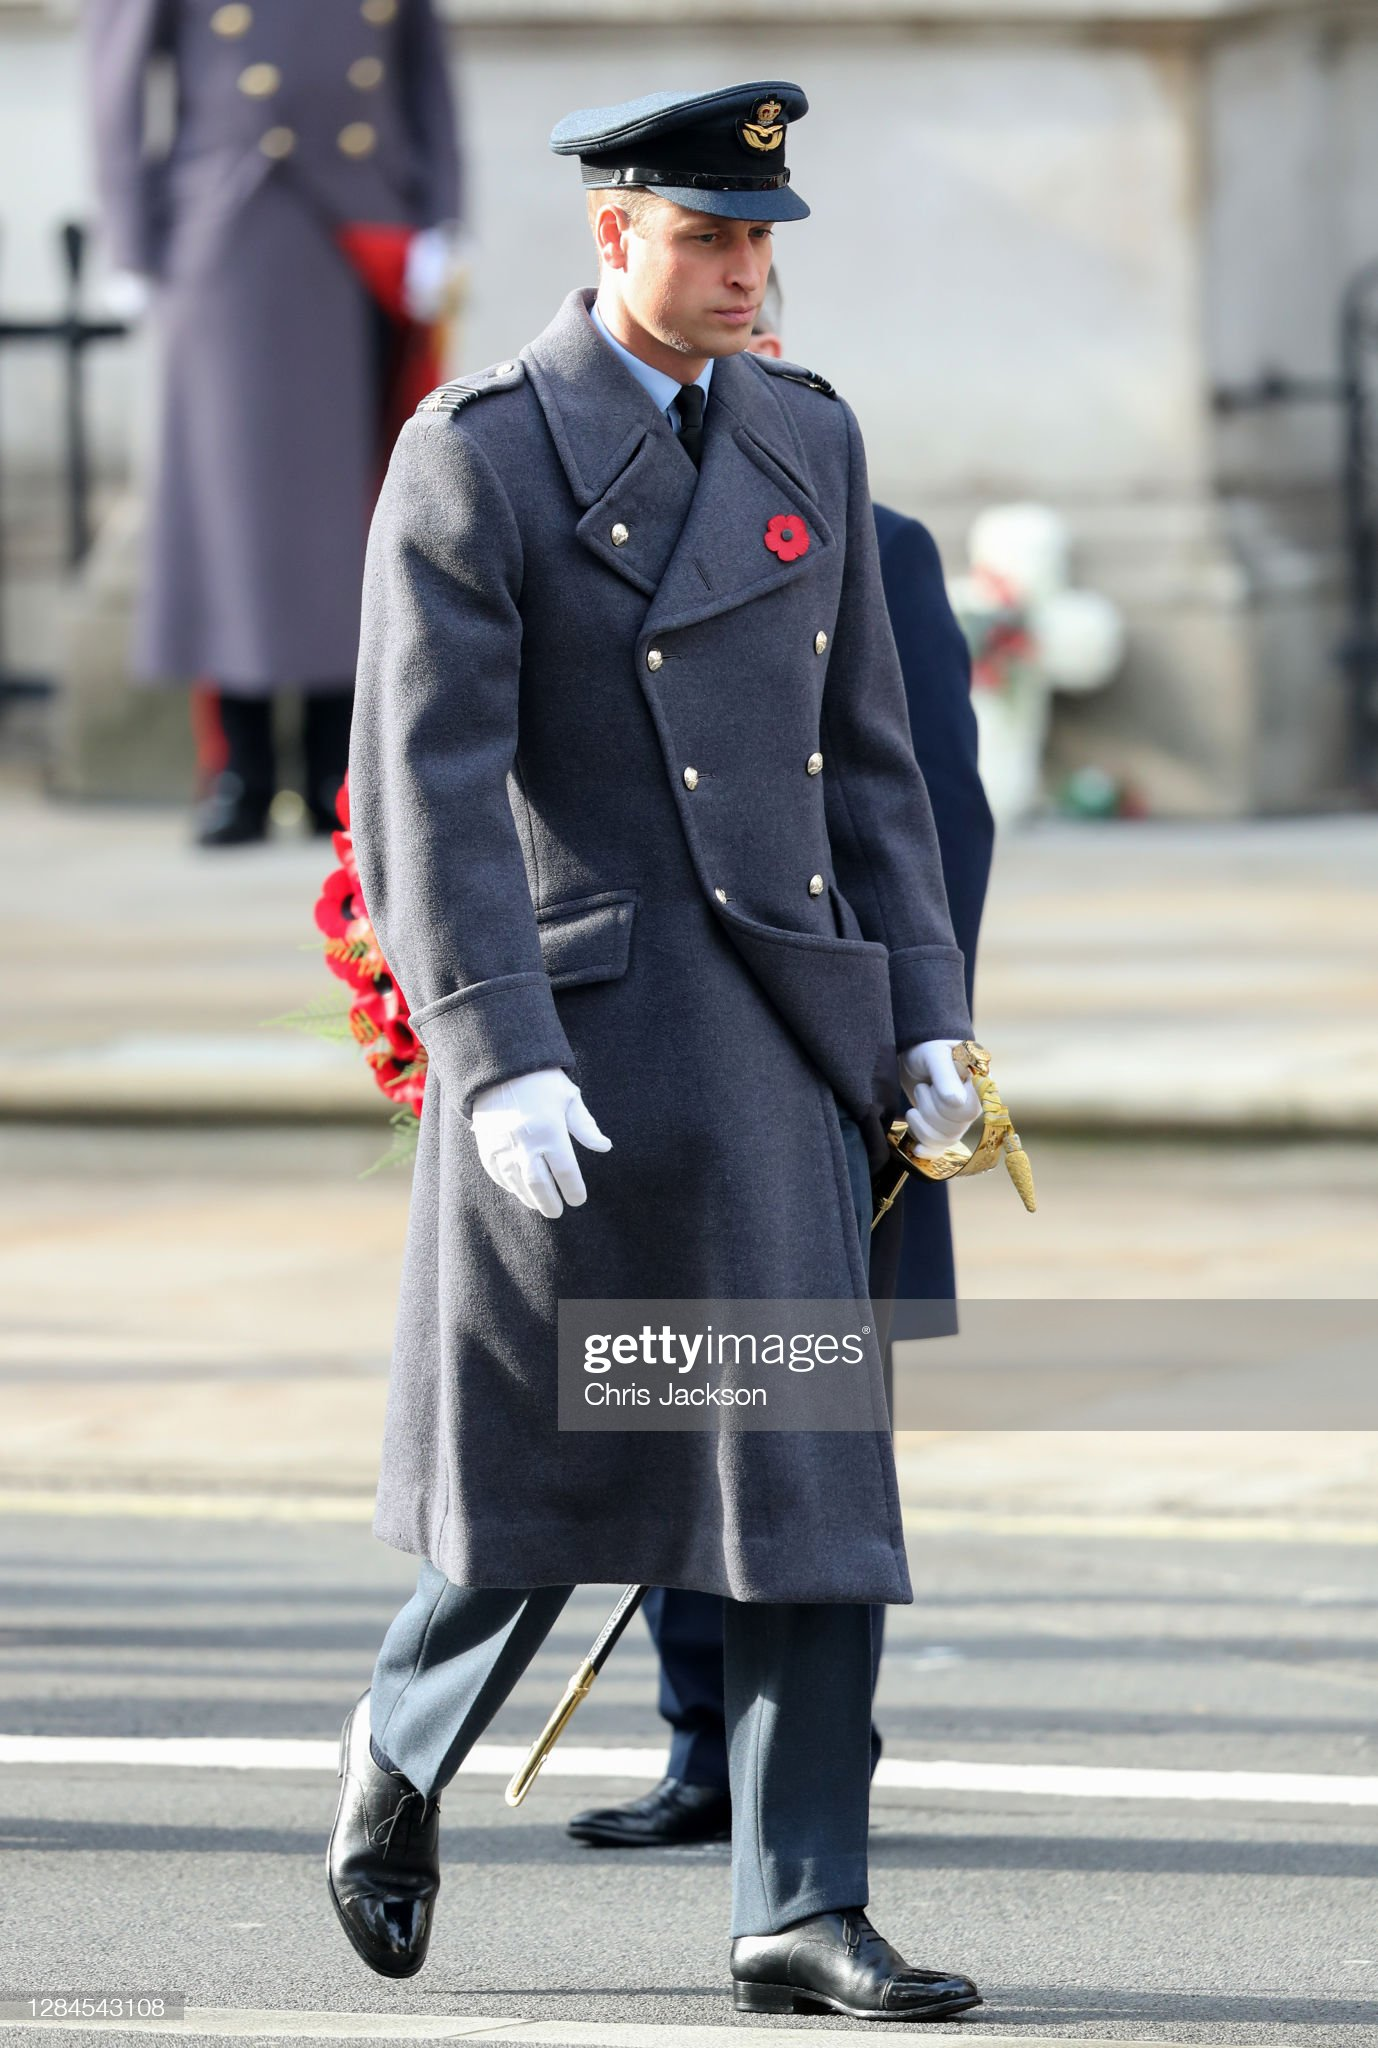 https://media.gettyimages.com/photos/prince-william-duke-of-cambridge-during-the-national-service-of-at-picture-id1284543108?s=2048x2048